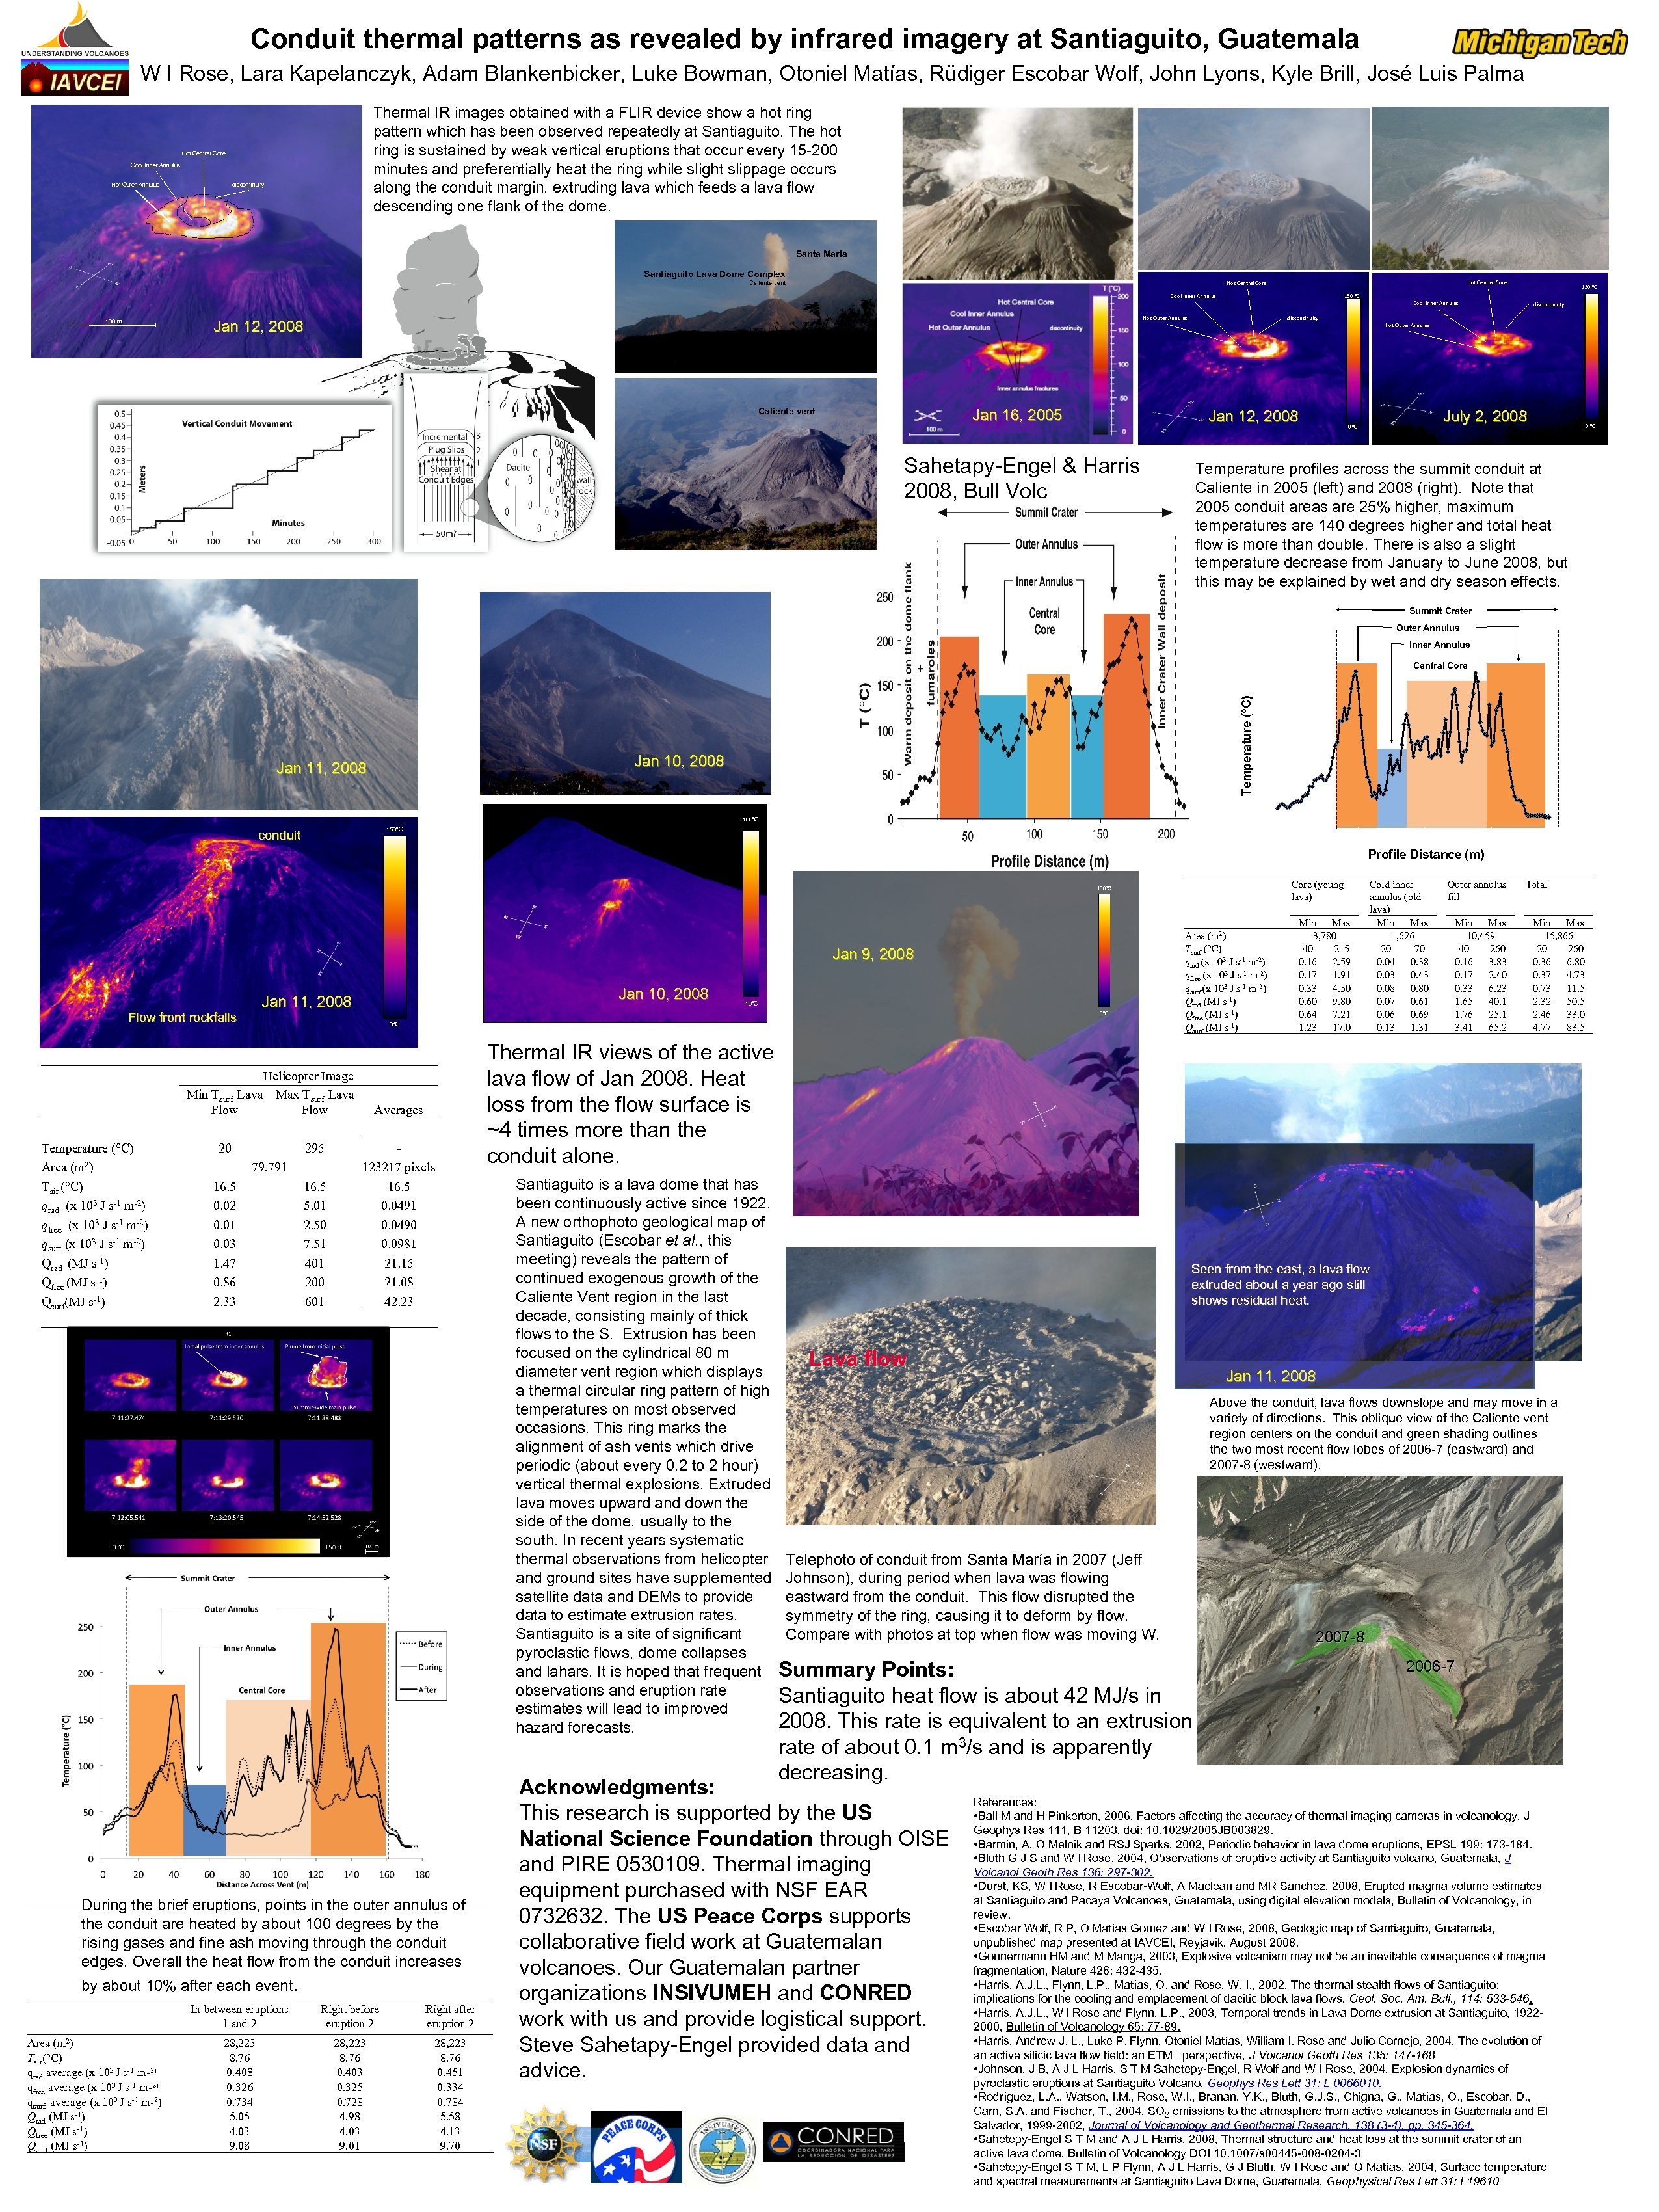 Conduit thermal patterns as revealed by infrared imagery at Santiaguito, Guatemala W I Rose,